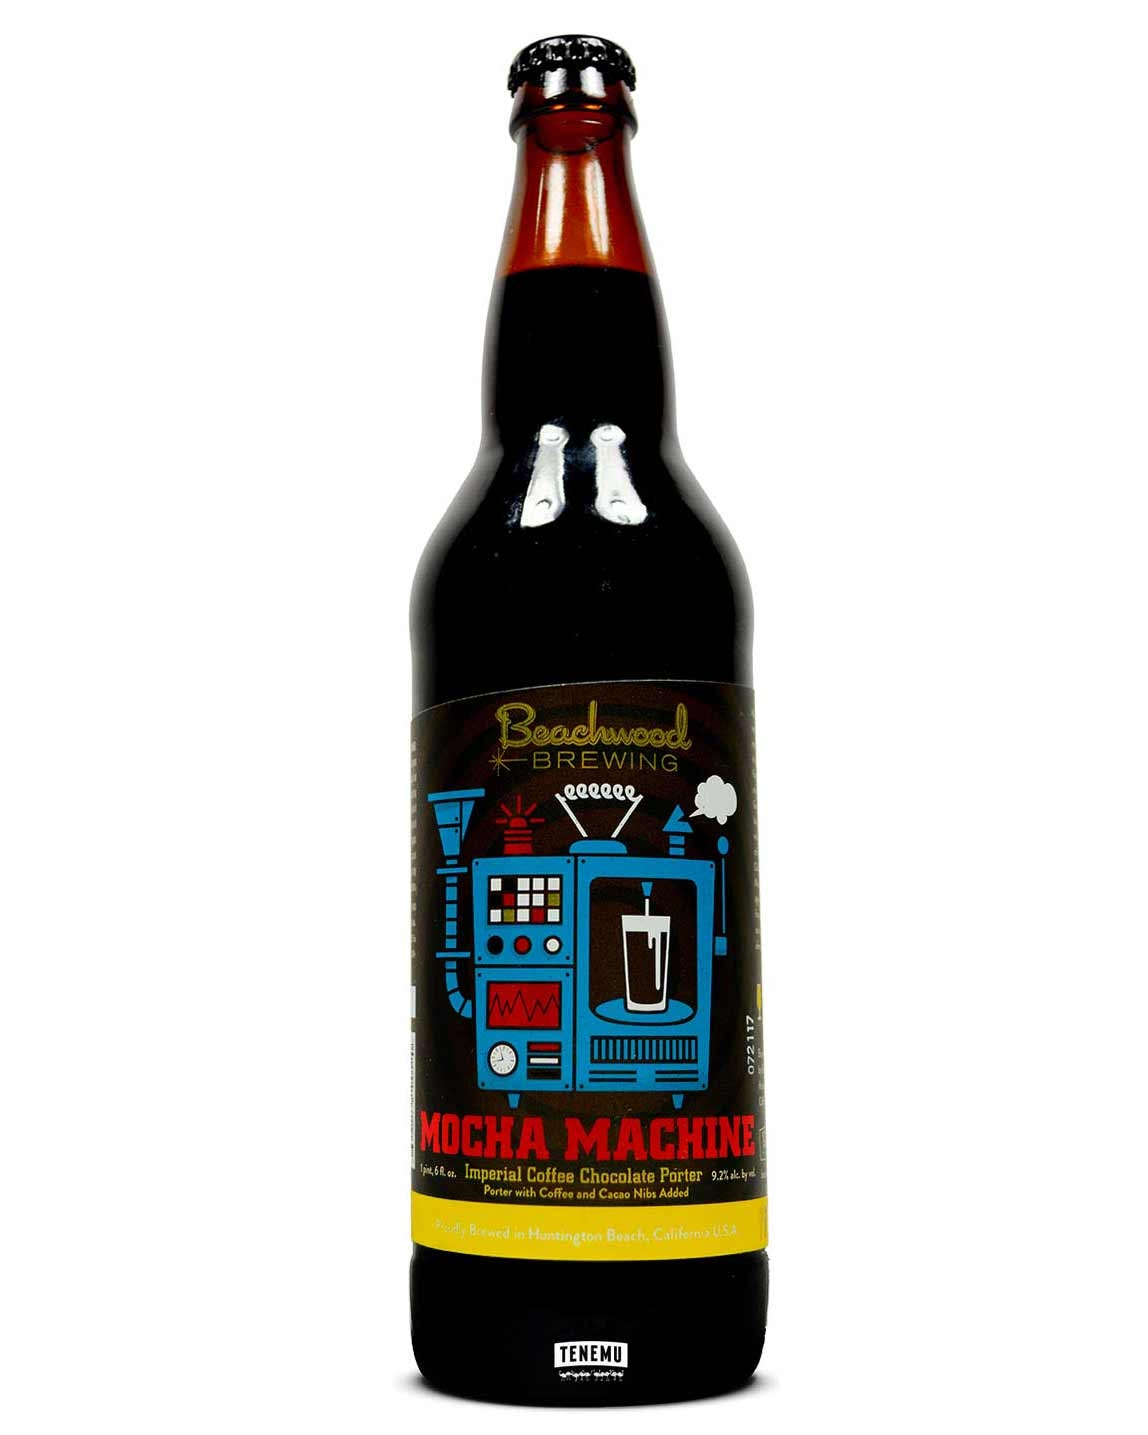 Beachwood Brewing brews and bottles all their beers in-house. They are hard to obtain but worth the effort and is a must-try for any porter-lover. Mocha Machine is ranked as the 22nd best American Porter on Beer Advocate, the beer-lovers equivalent of WatchUSeek.